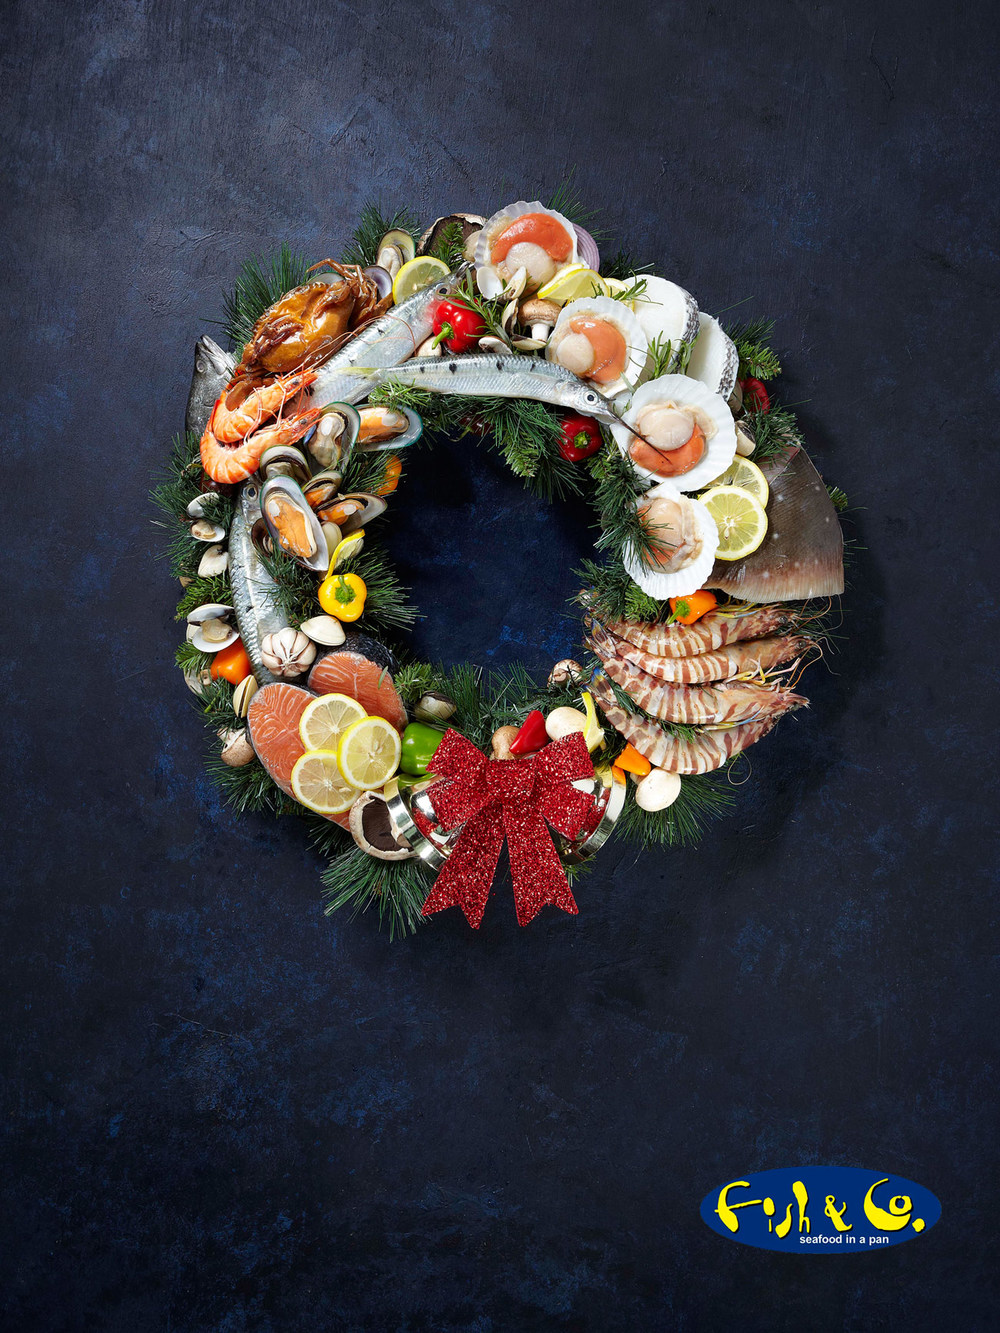 20151002-Fish&CO-Christmas-14845-with-logo.jpg